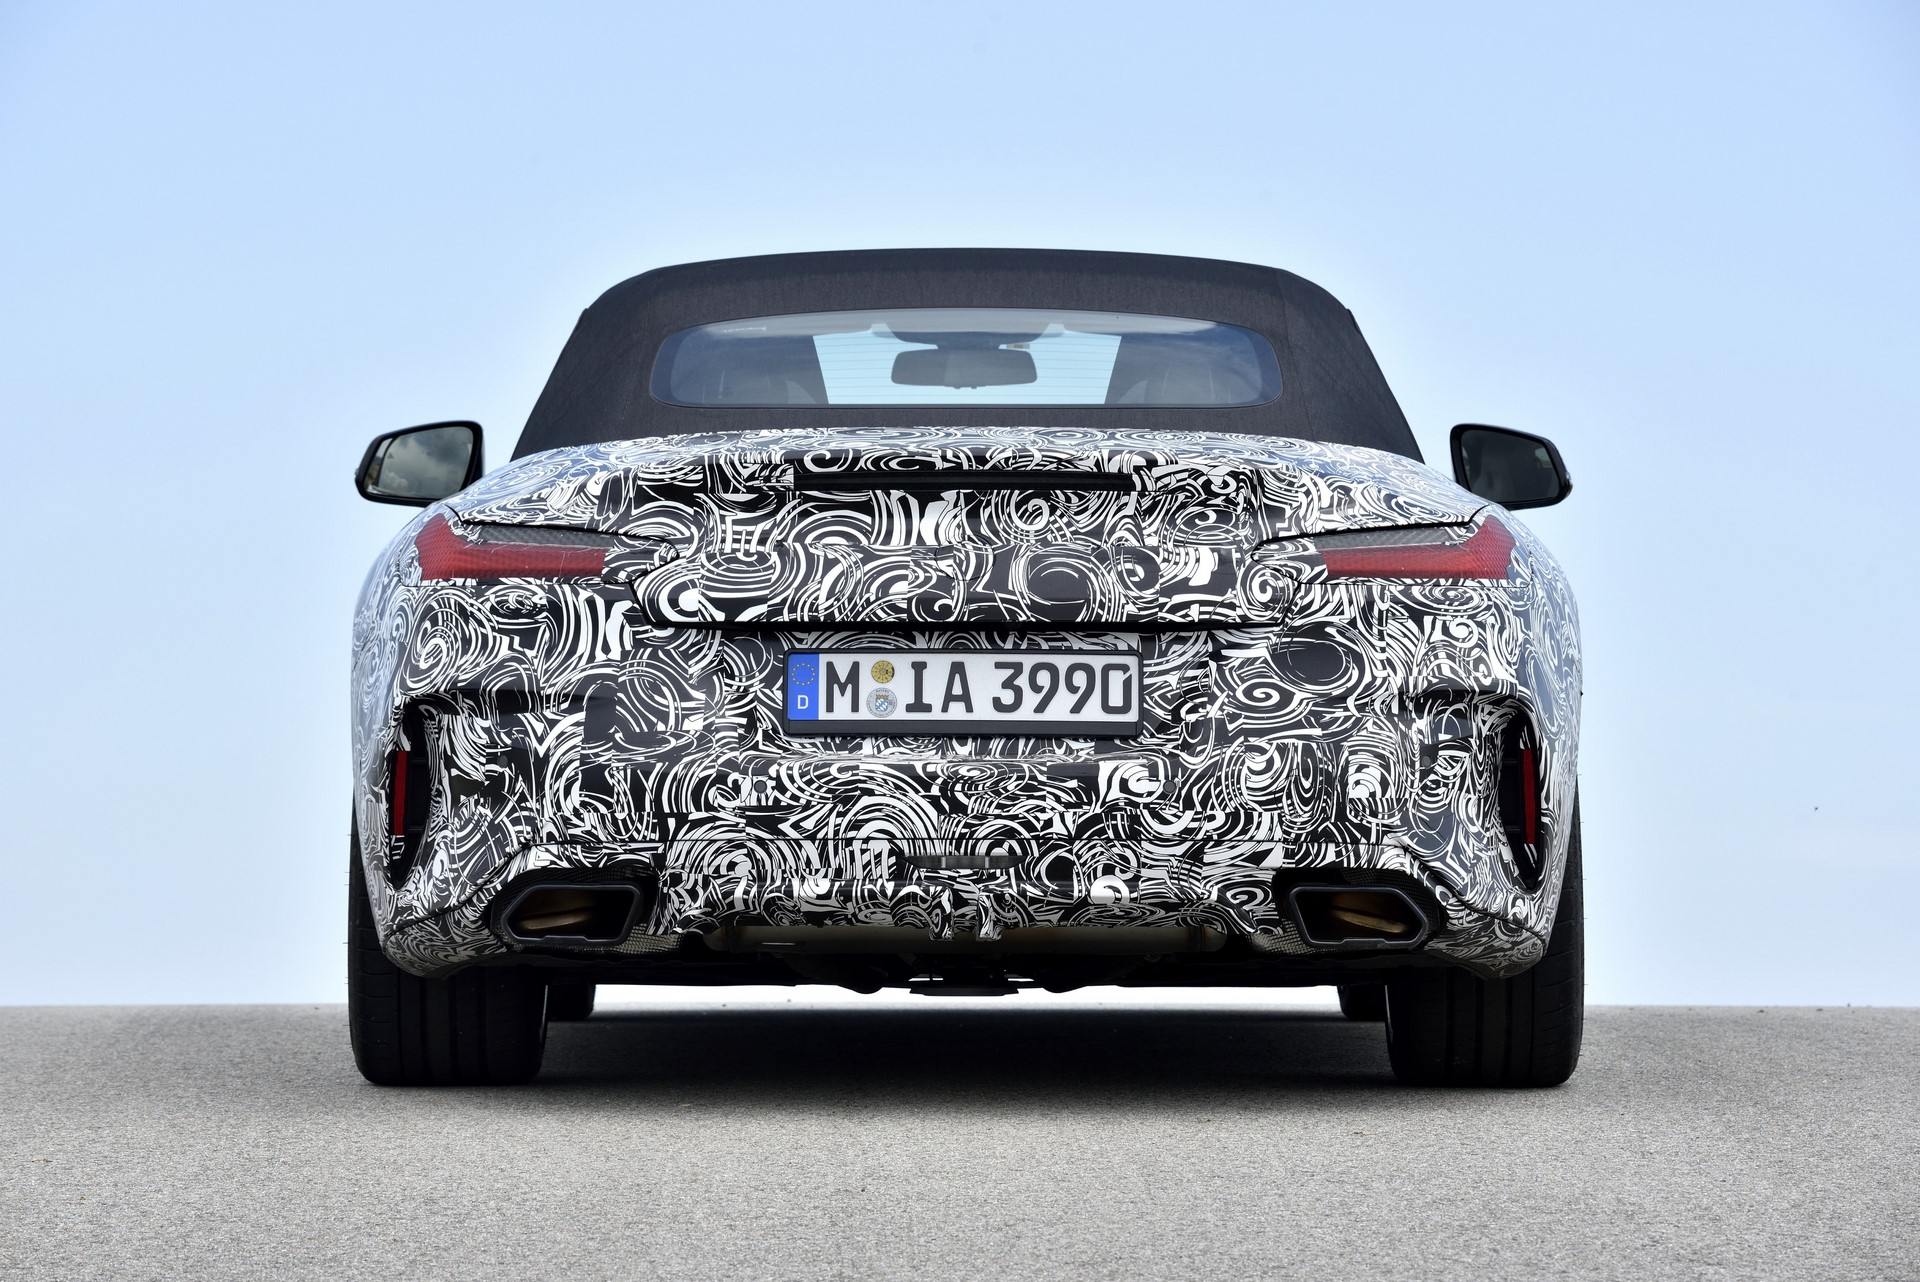 BMW Z4 M40i 2019 official spy photos (32)